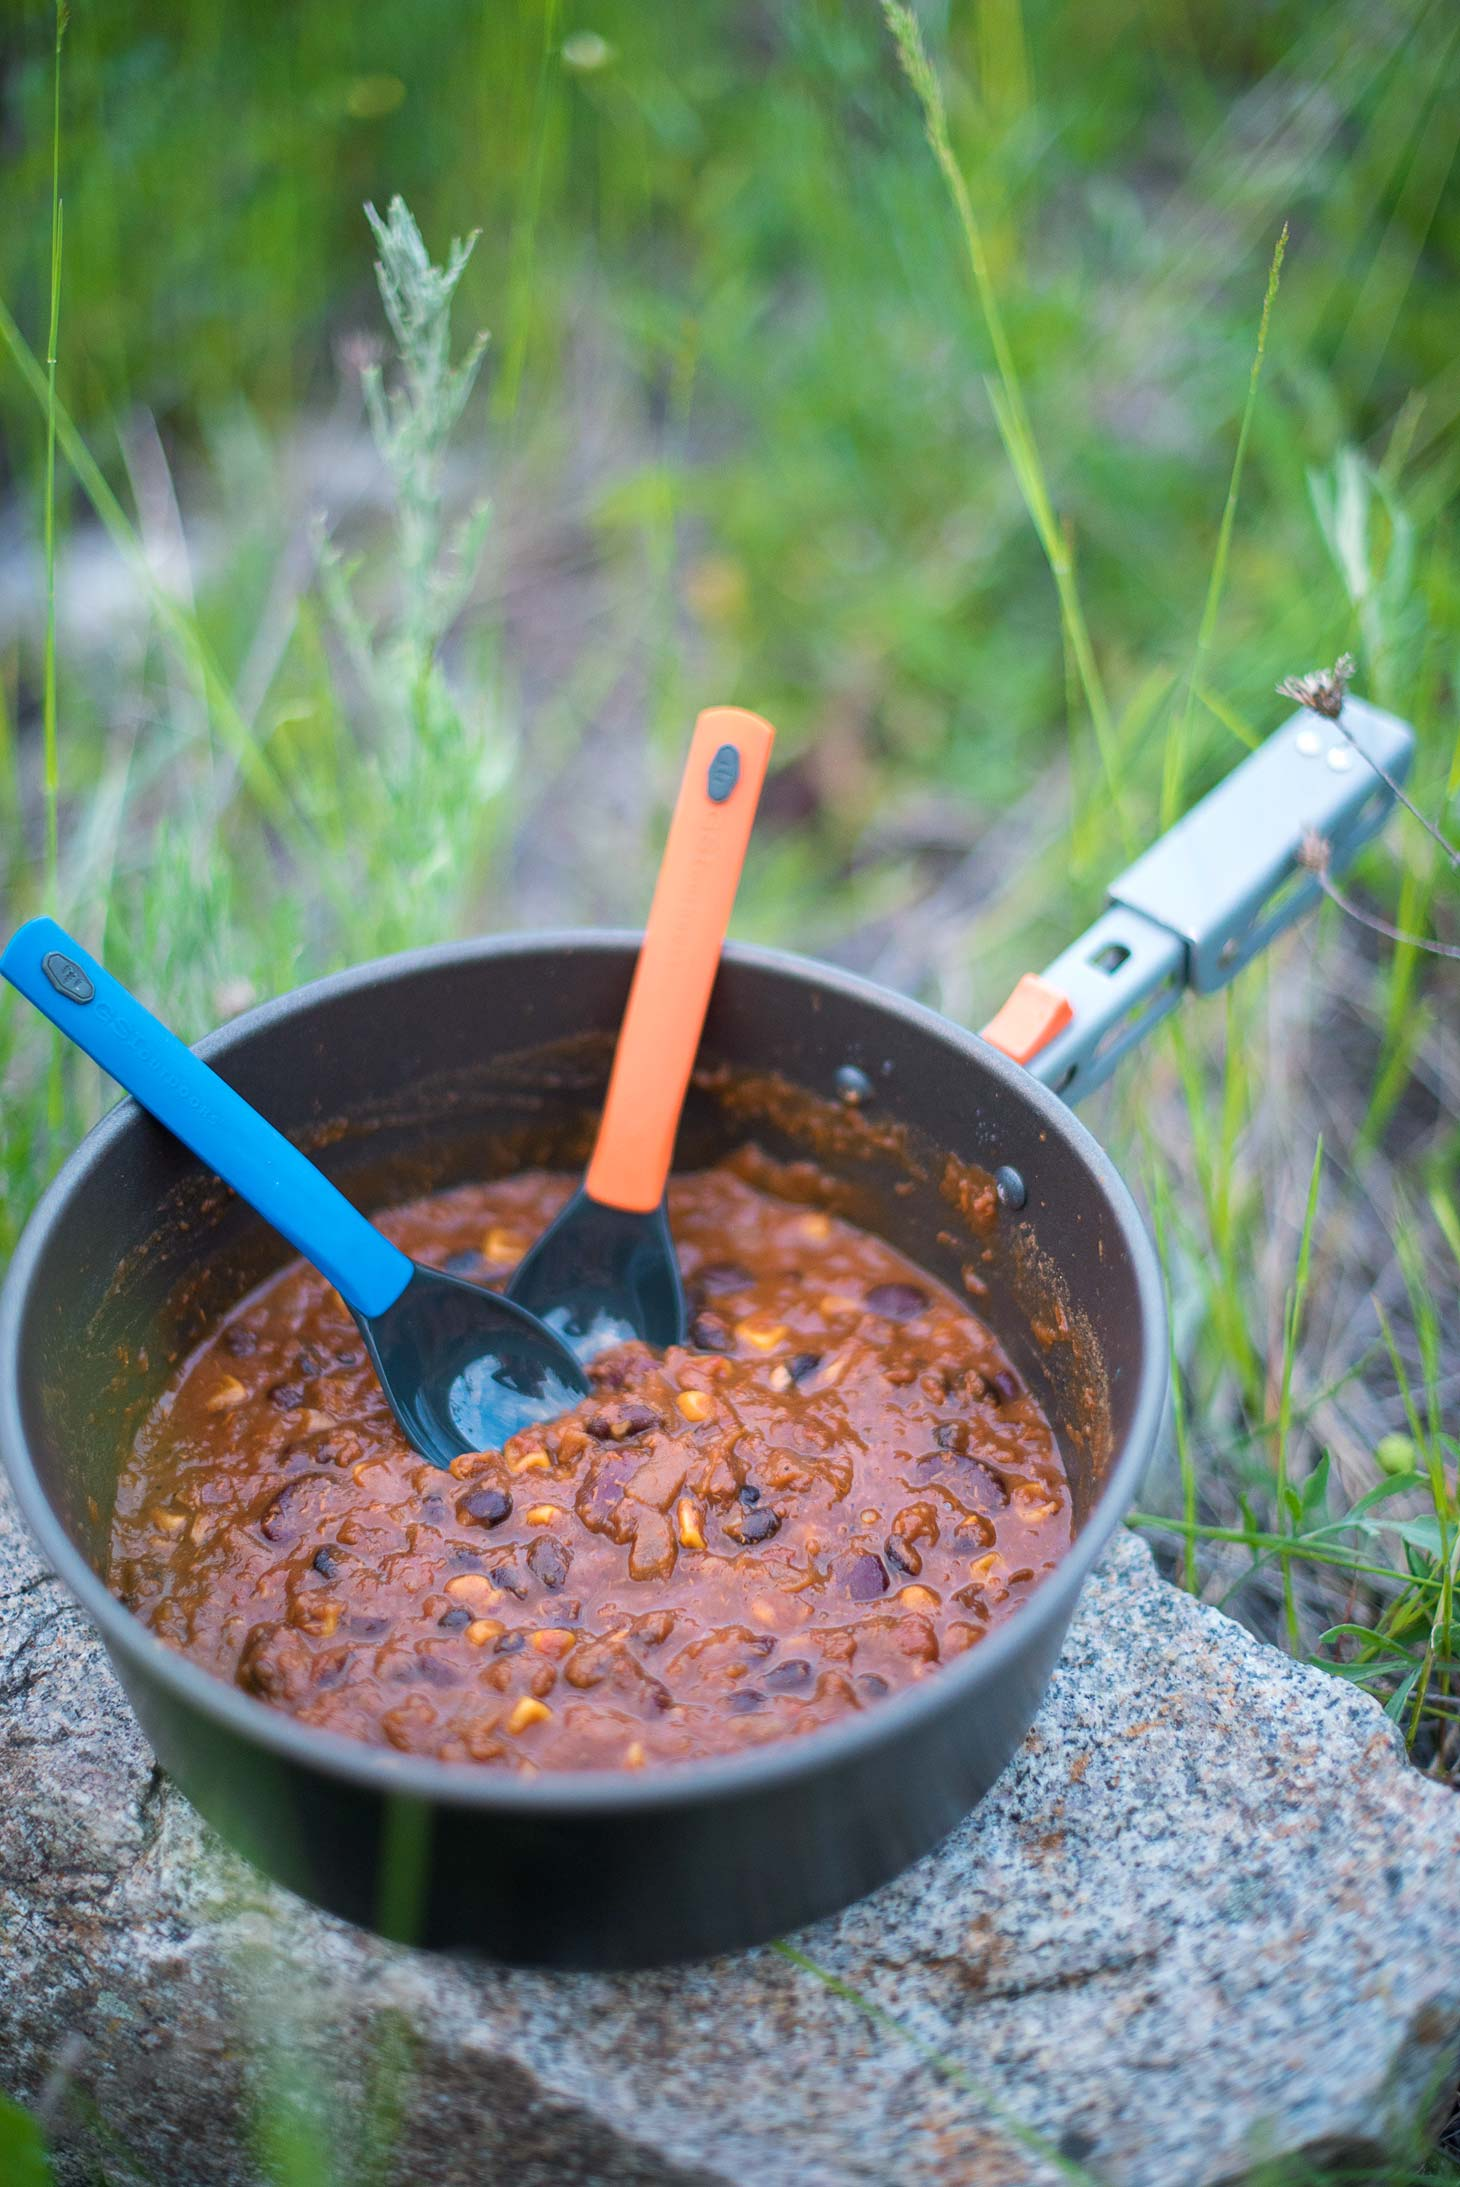 DIY Backpacking Food - a healthy vegan quinoa chili made with a dehydrator, perfect for your backcountry adventures.